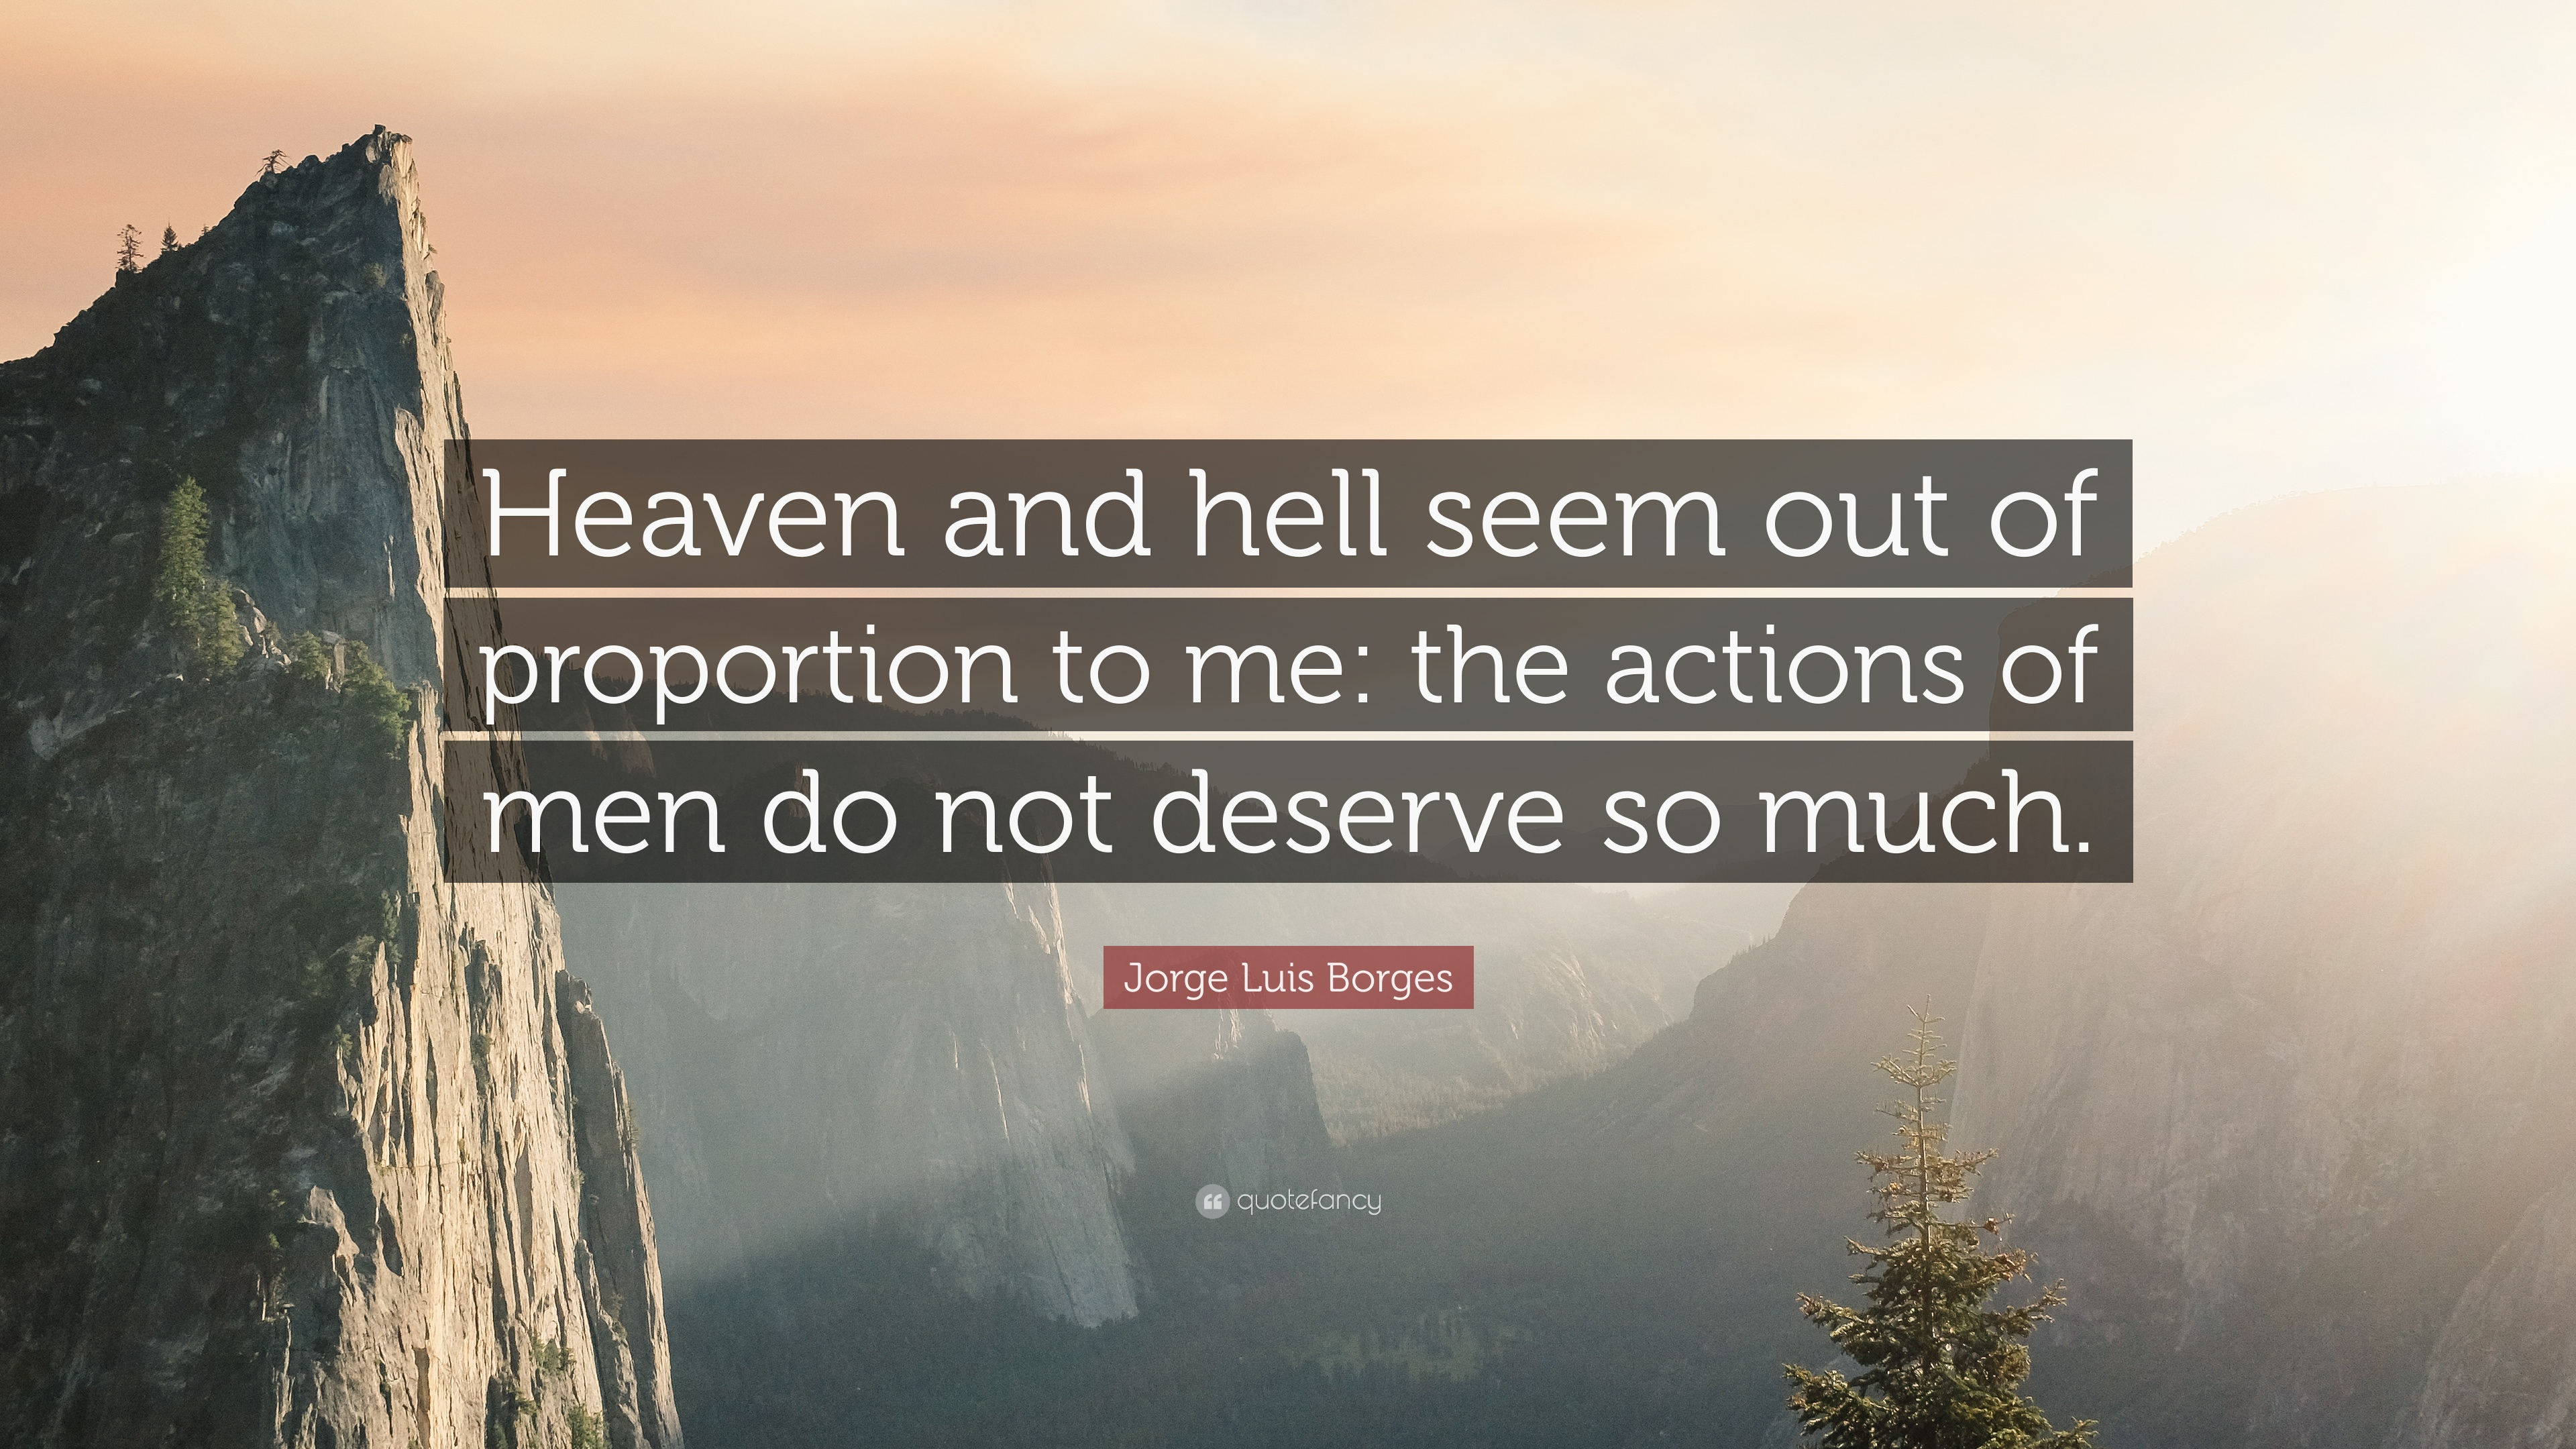 Jorge Luis Borges Quote Heaven And Hell Seem Out Of Proportion To